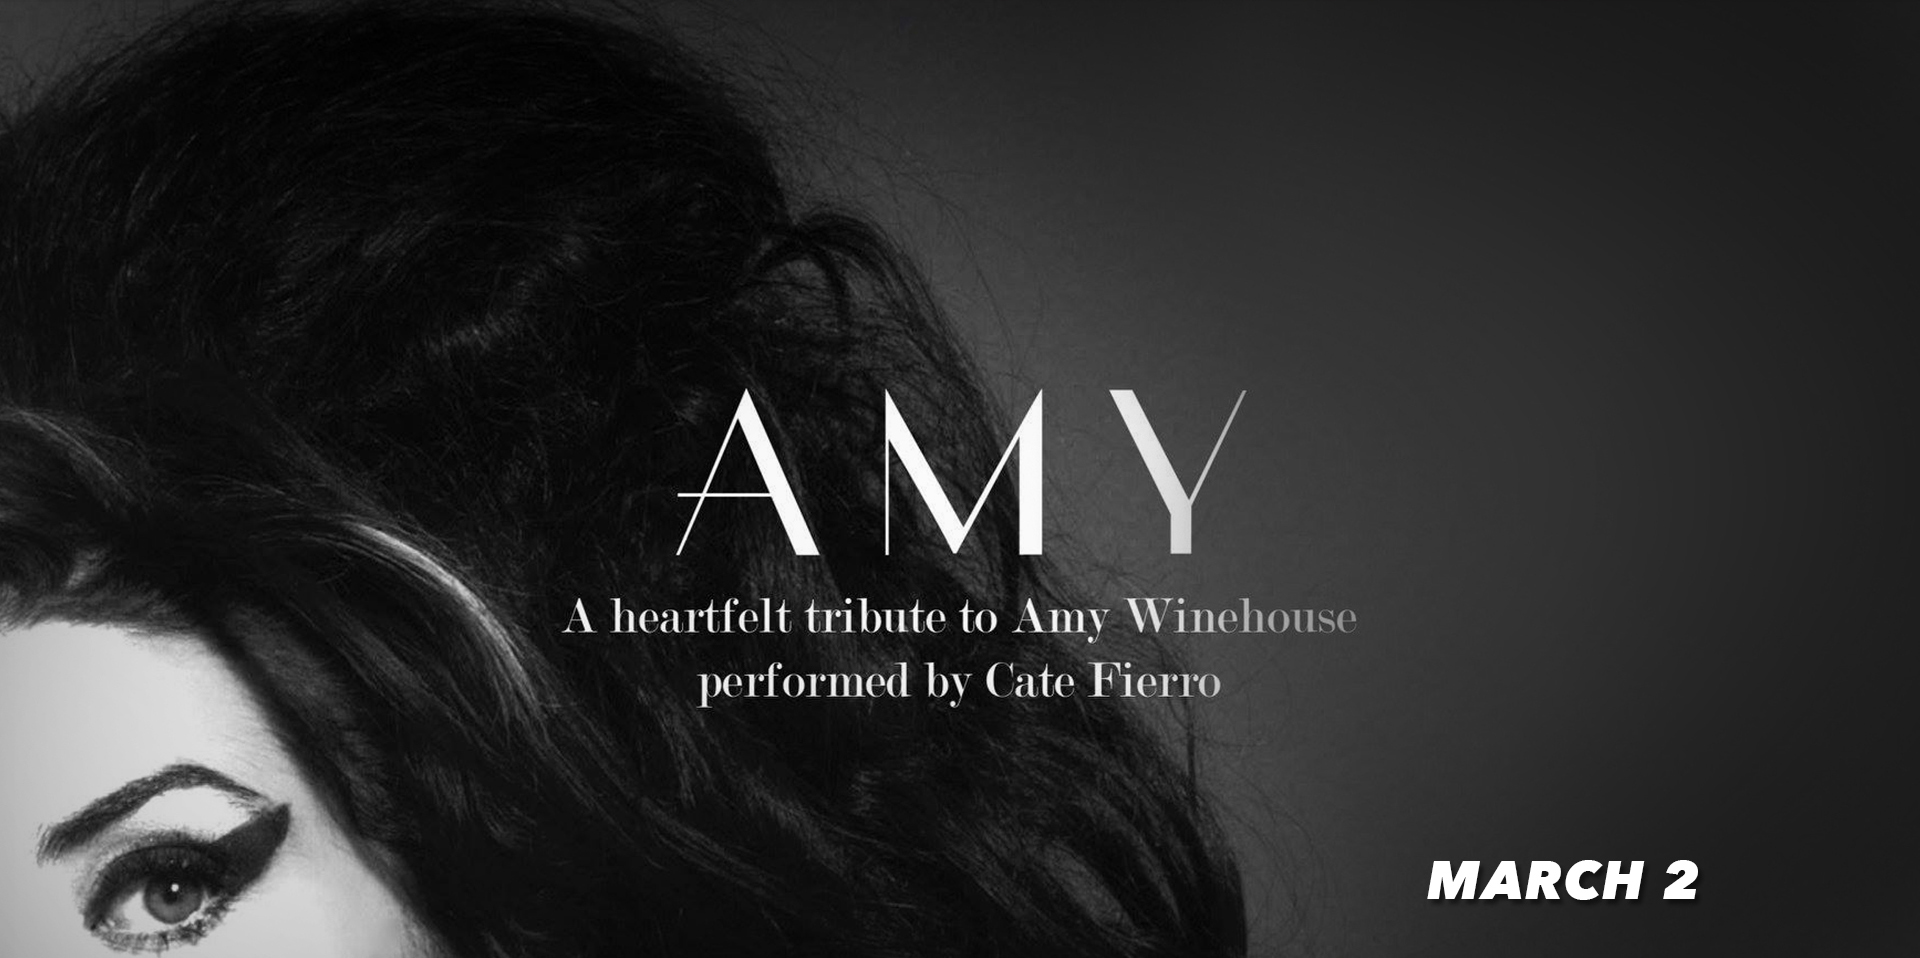 AMY - A Heartfelt tribute to Amy Winehouse - Sultry R&B singer Cate Fierro lion-tames an 11-piece band in this smoldering tribute to Amy Winehouse, which is back by popular demand after igniting the club in January.